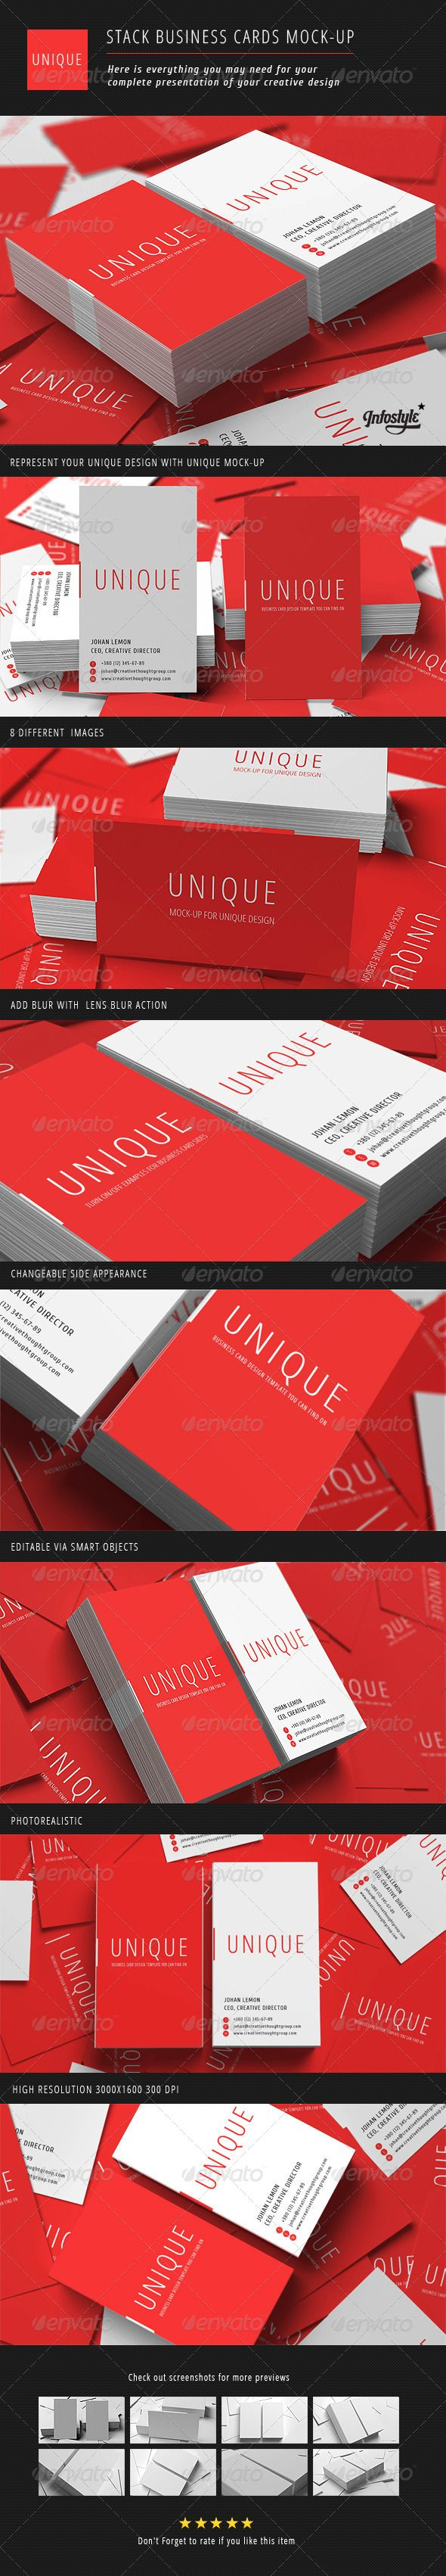 Stack business cards mock up business cards mockup and vertical stack business cards mock up modern paper photorealistic available here reheart Image collections